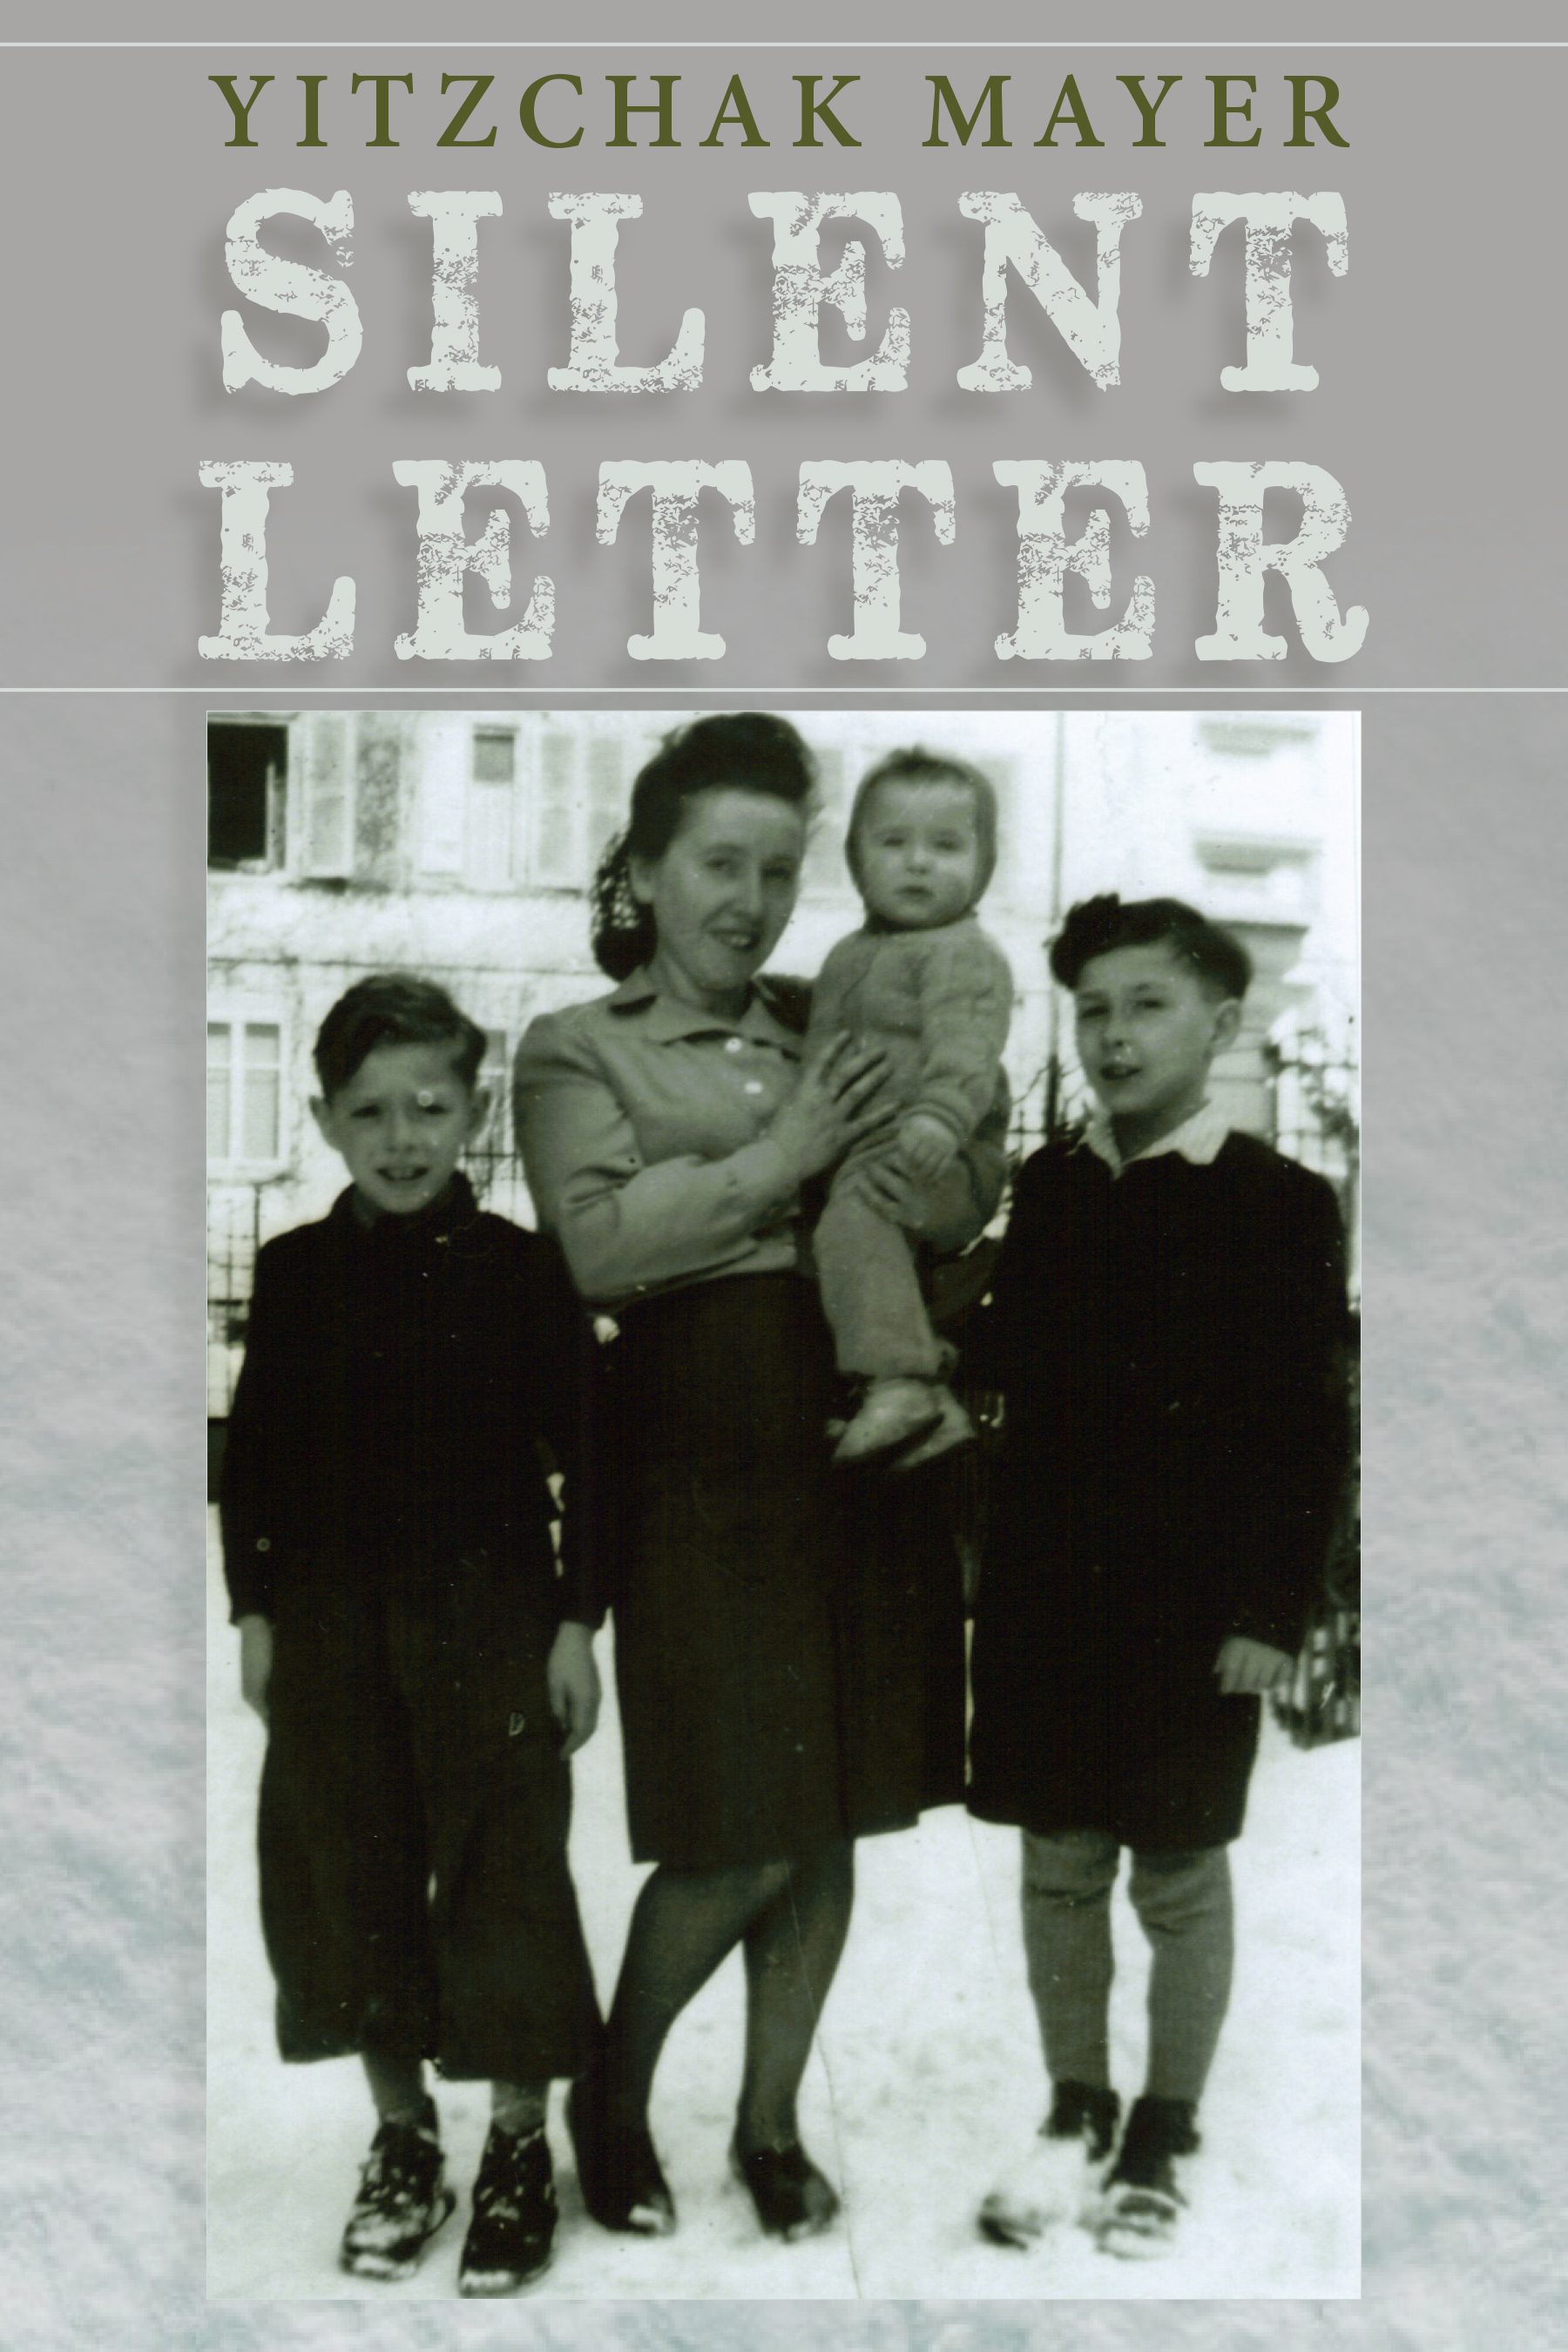 Mayer's semi-authobiographical book Silent Letter (courtesy)